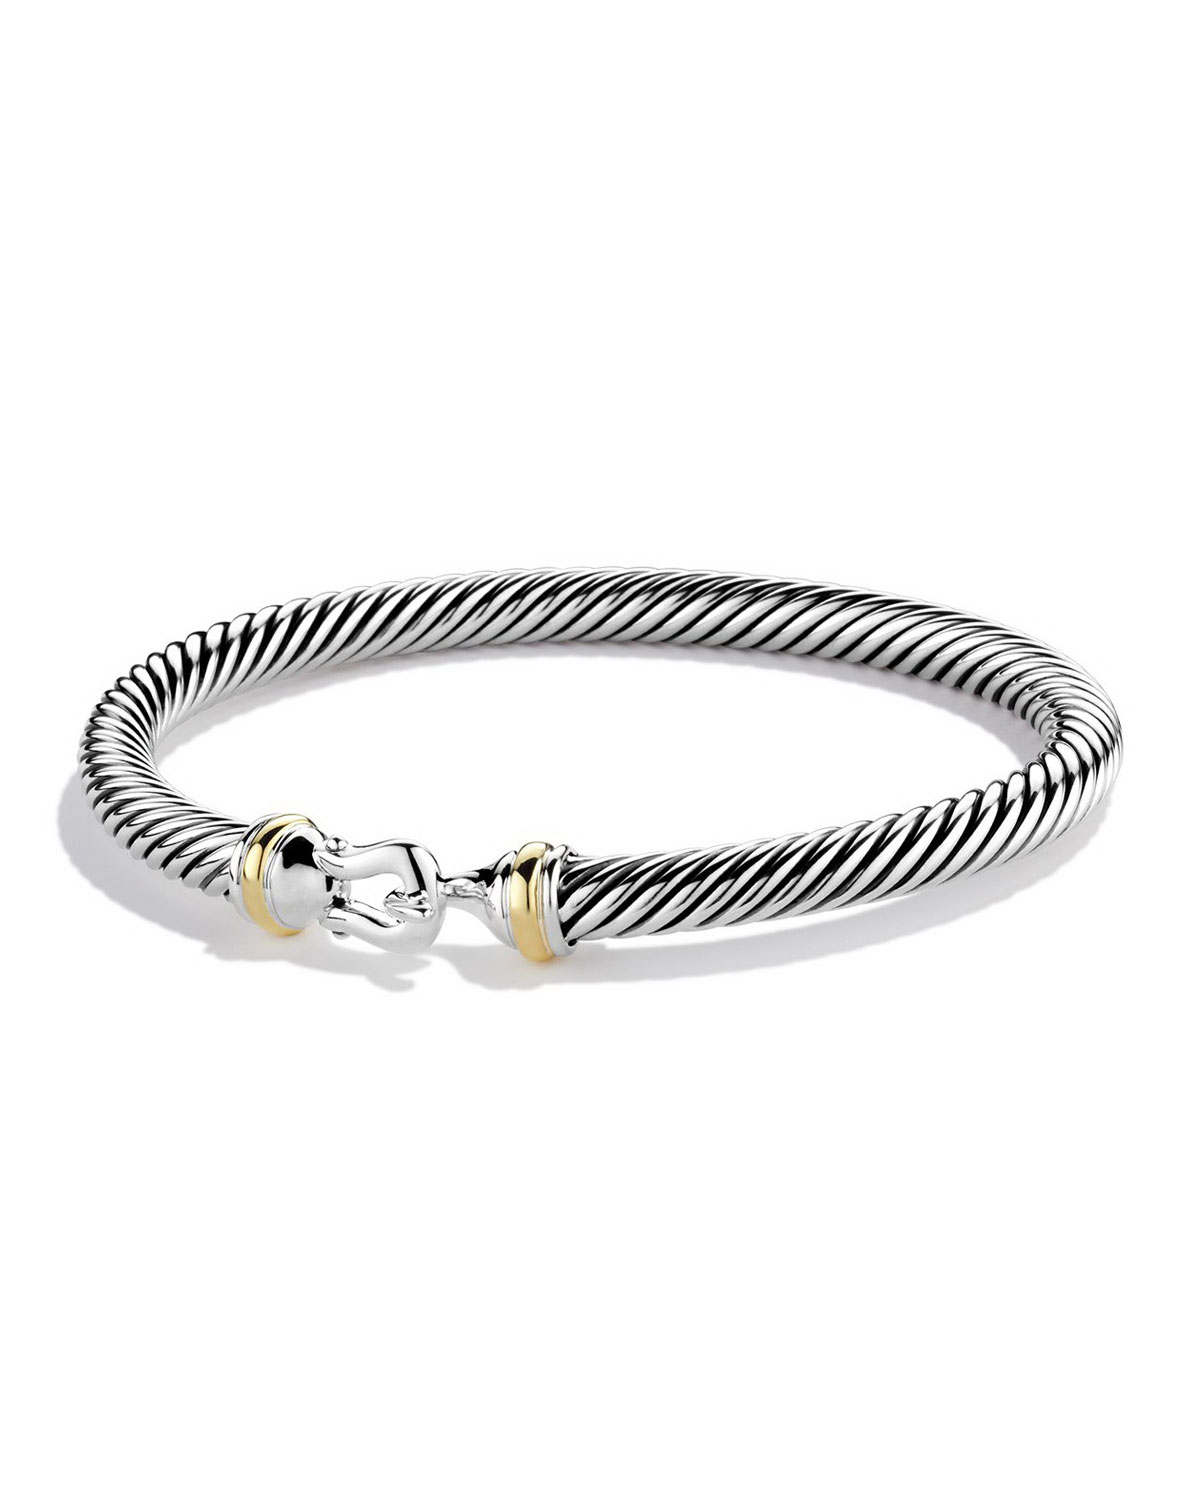 Cable Classic Buckle Bracelet with 18K Gold